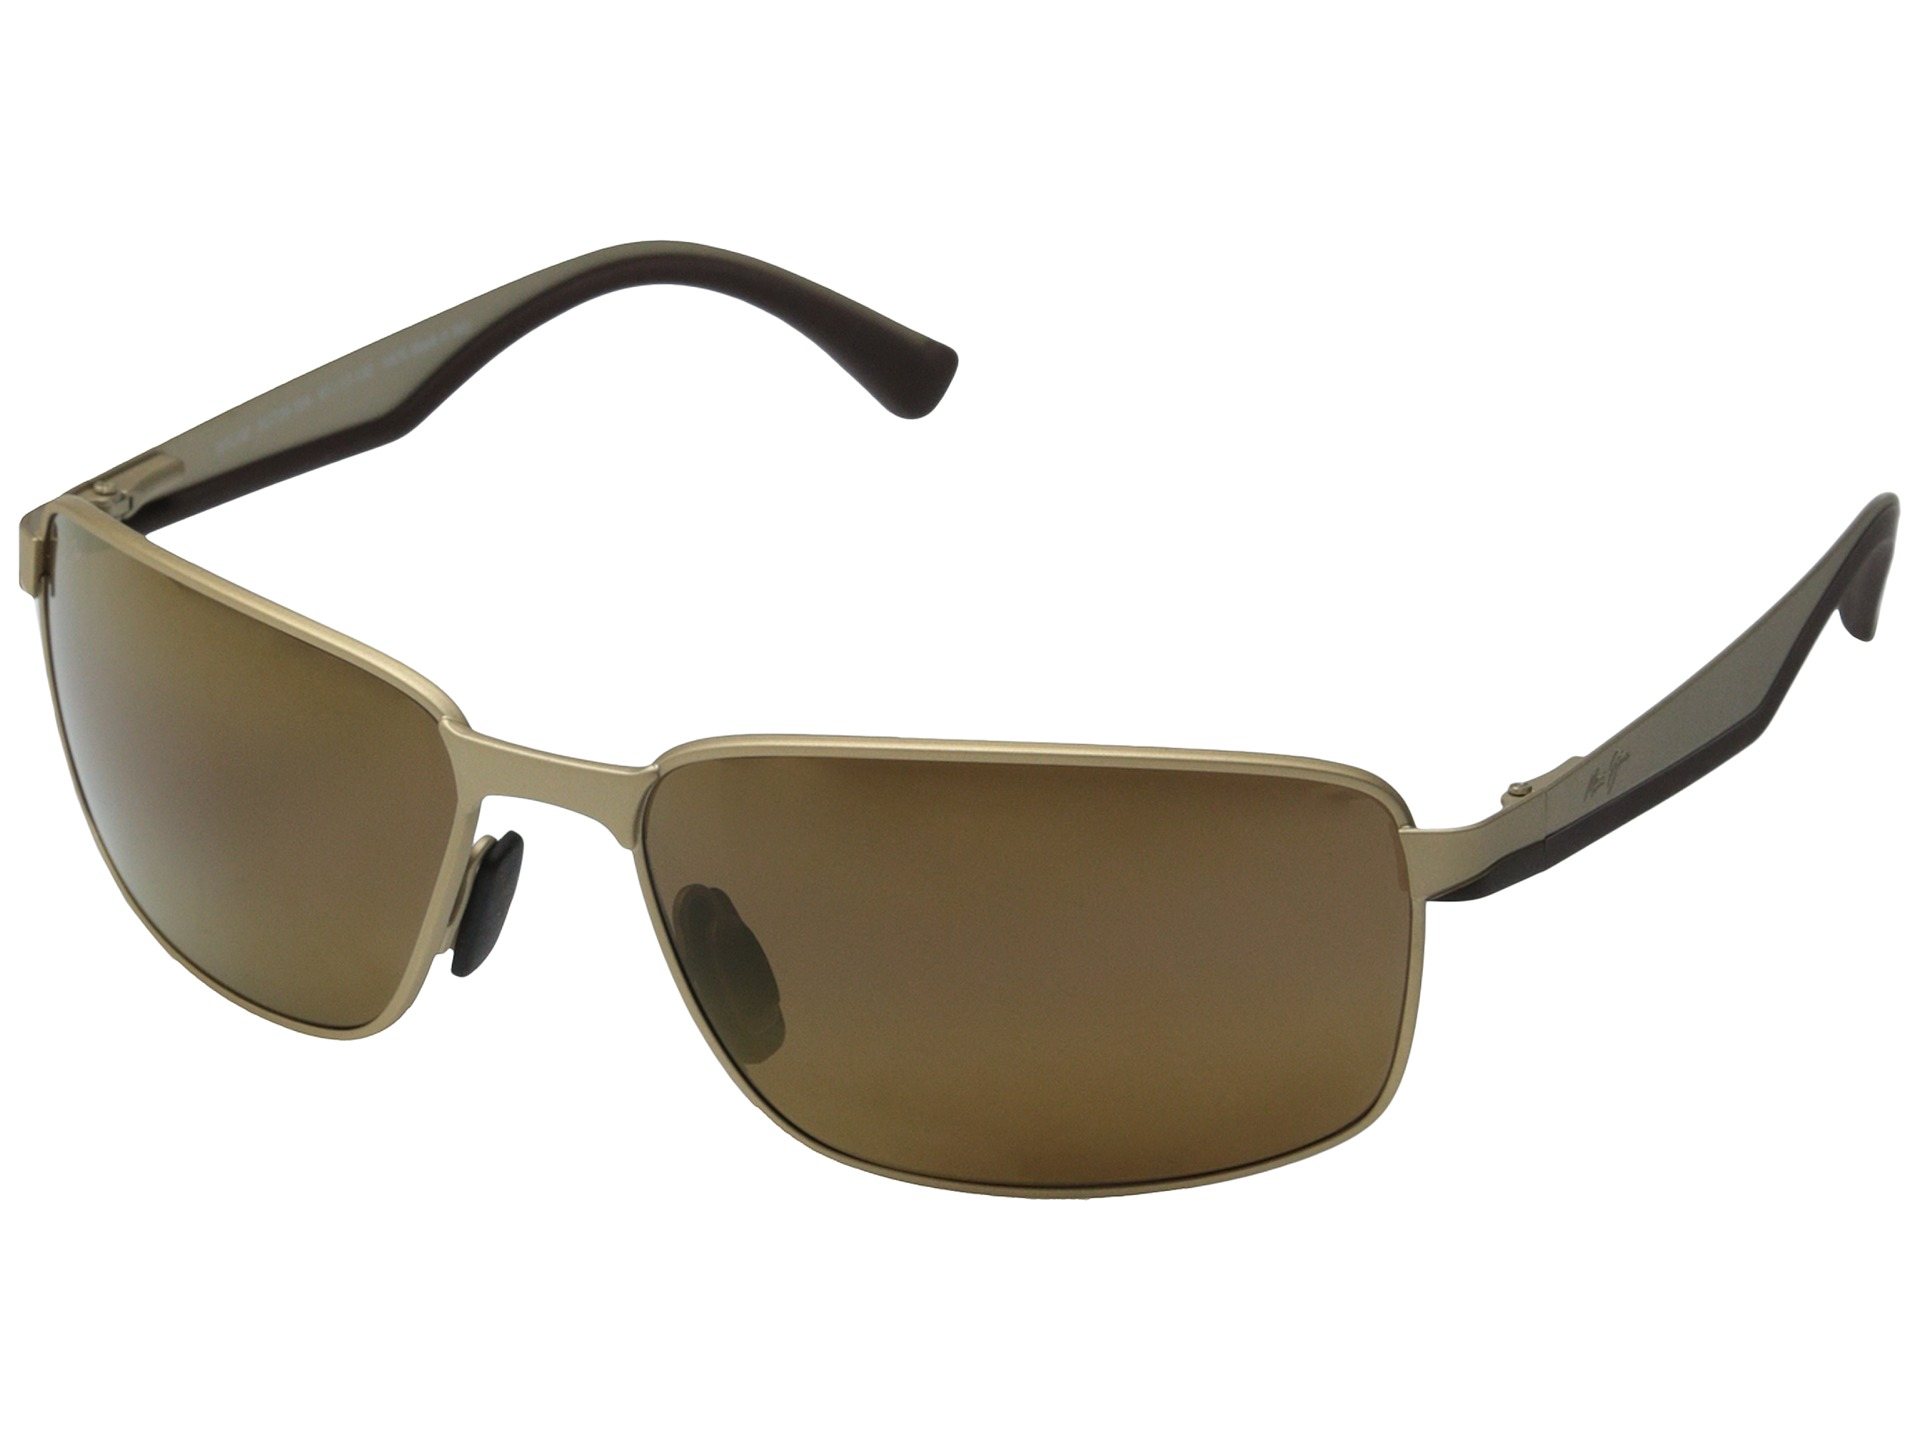 Maui Jim Baby Beach Reviews, Page 1